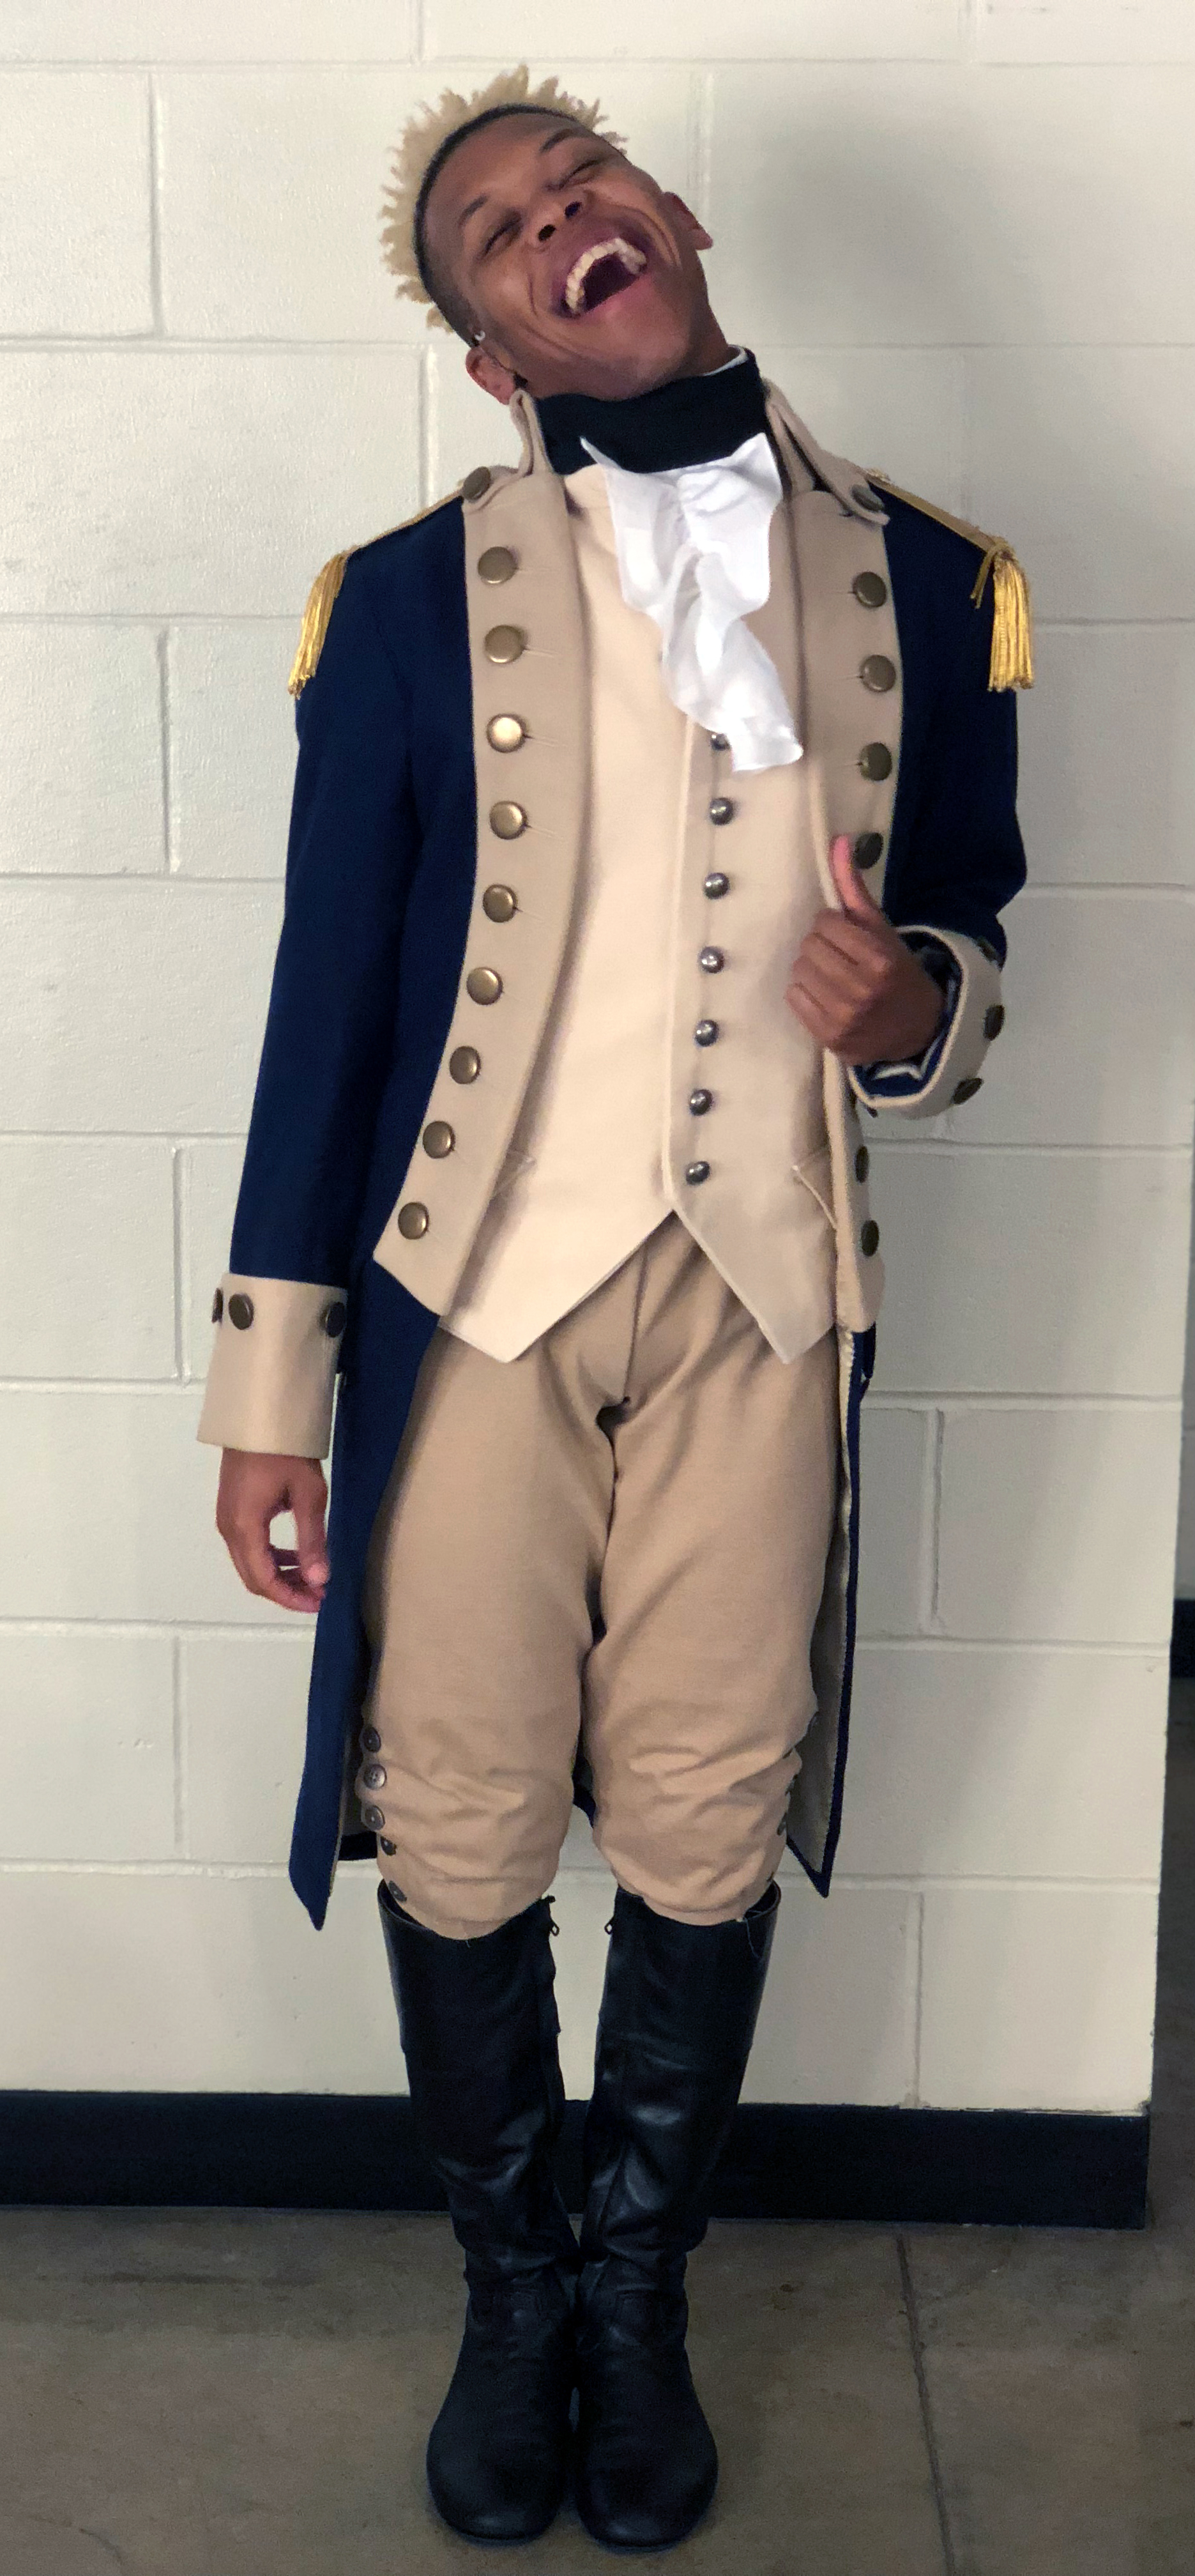 Eean Cochran in his costume for Hamilton